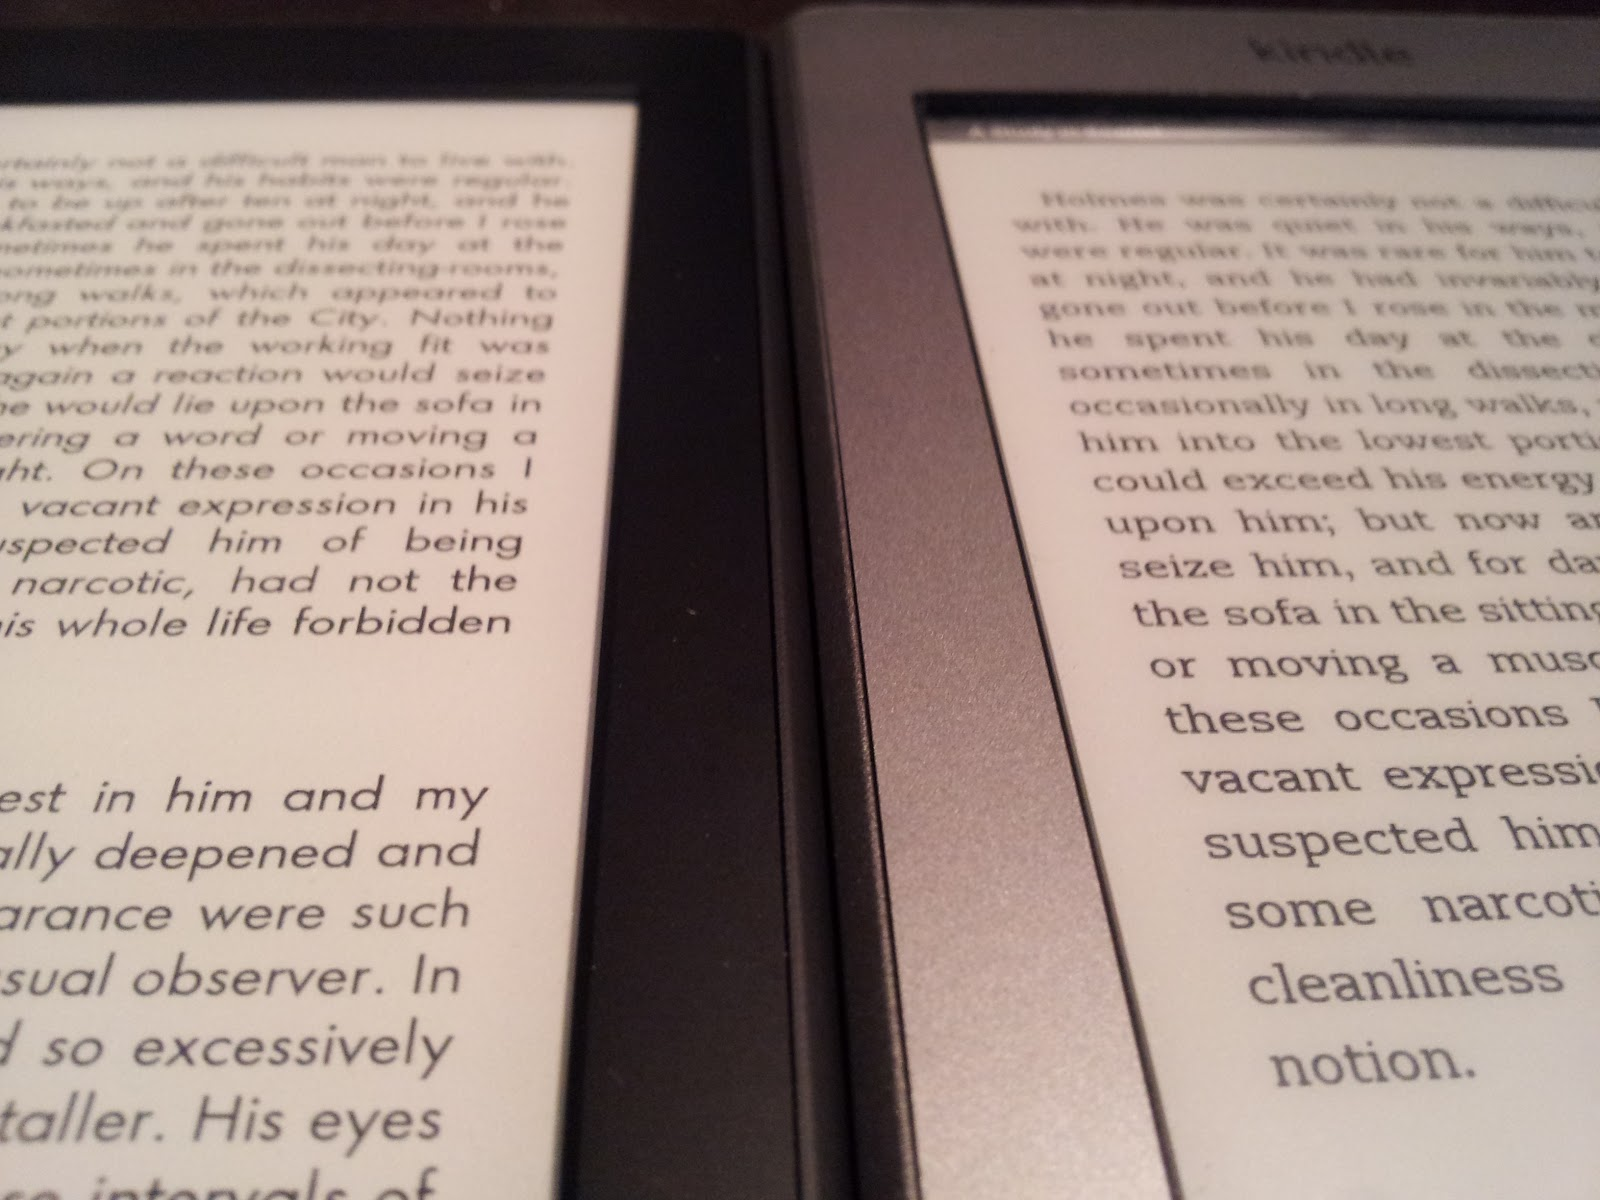 how to tell which kindle i have